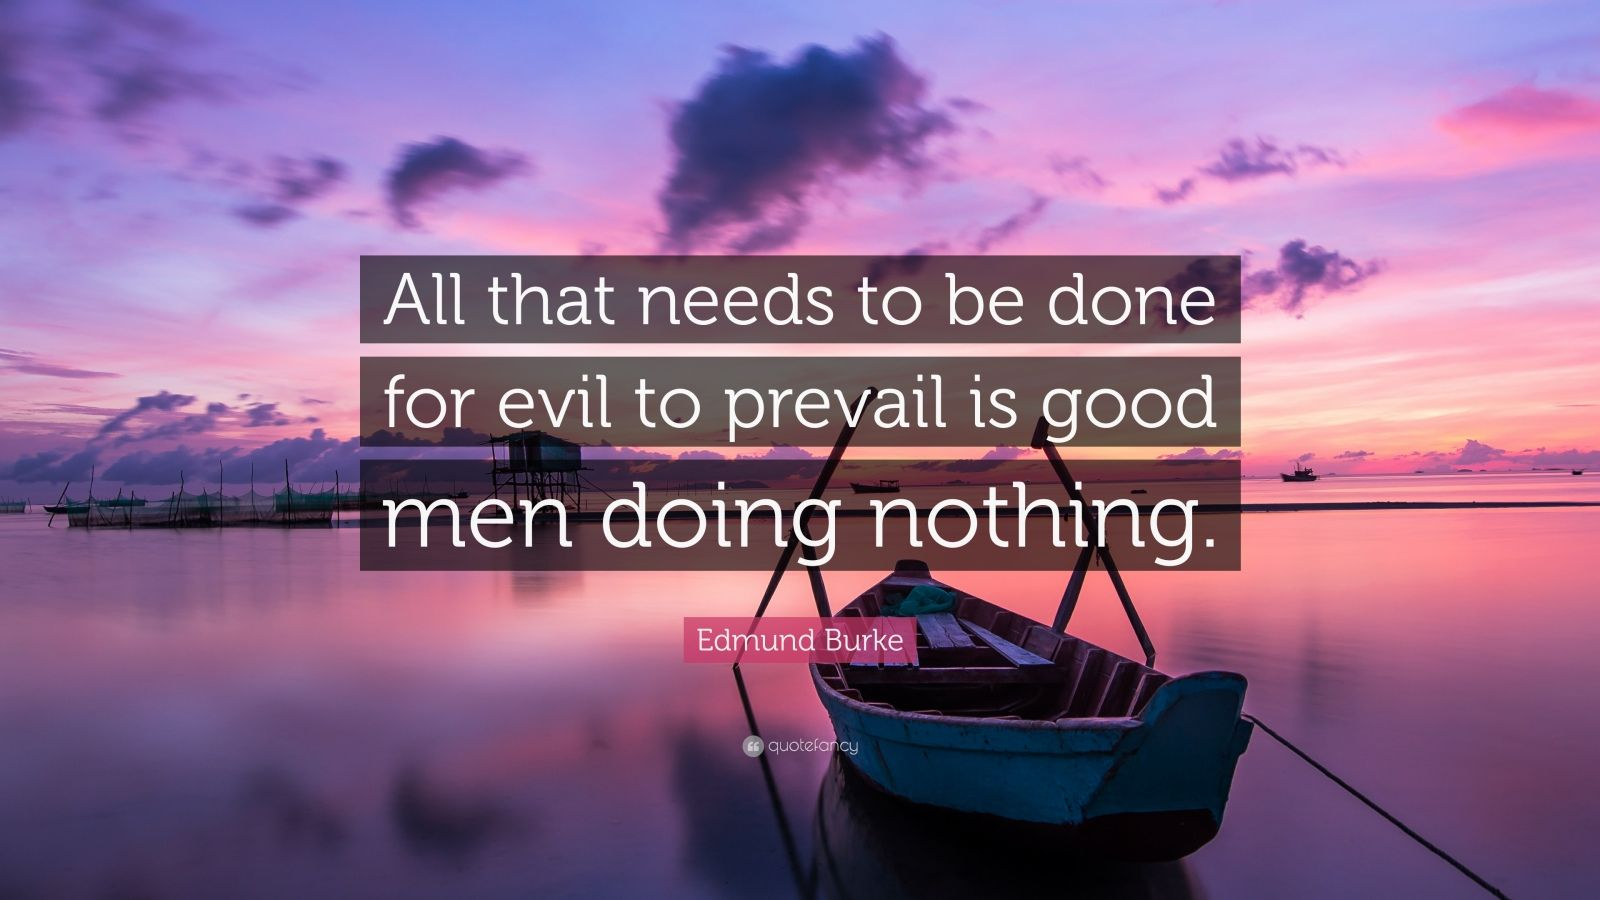 """Edmund Burke Quote: """"All that needs to be done for evil to prevail is good men doing nothing."""""""